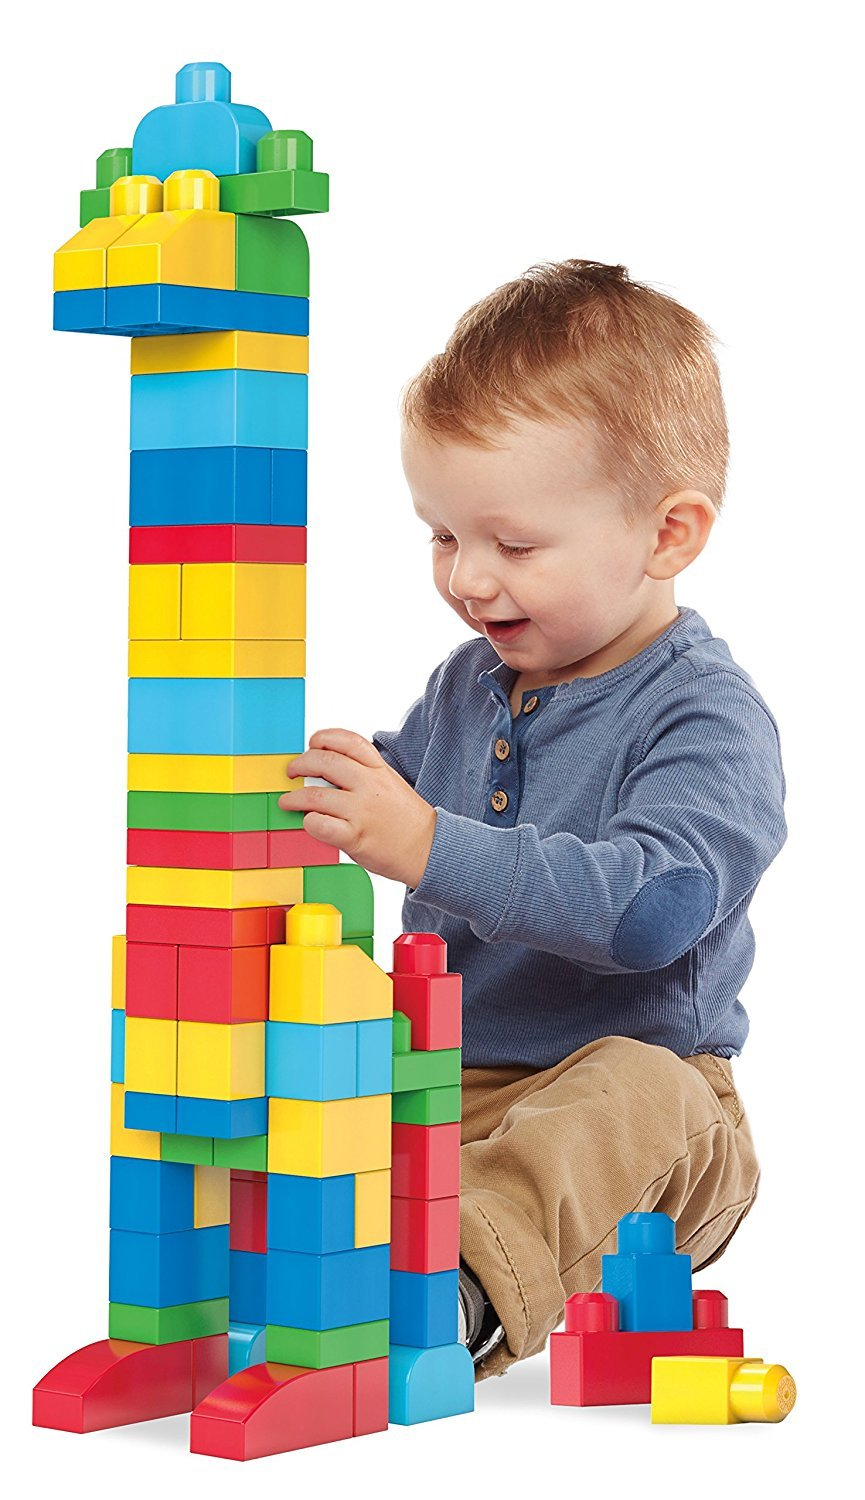 Building Toys For Little Boys : Best gifts for year old boys in itsy bitsy fun